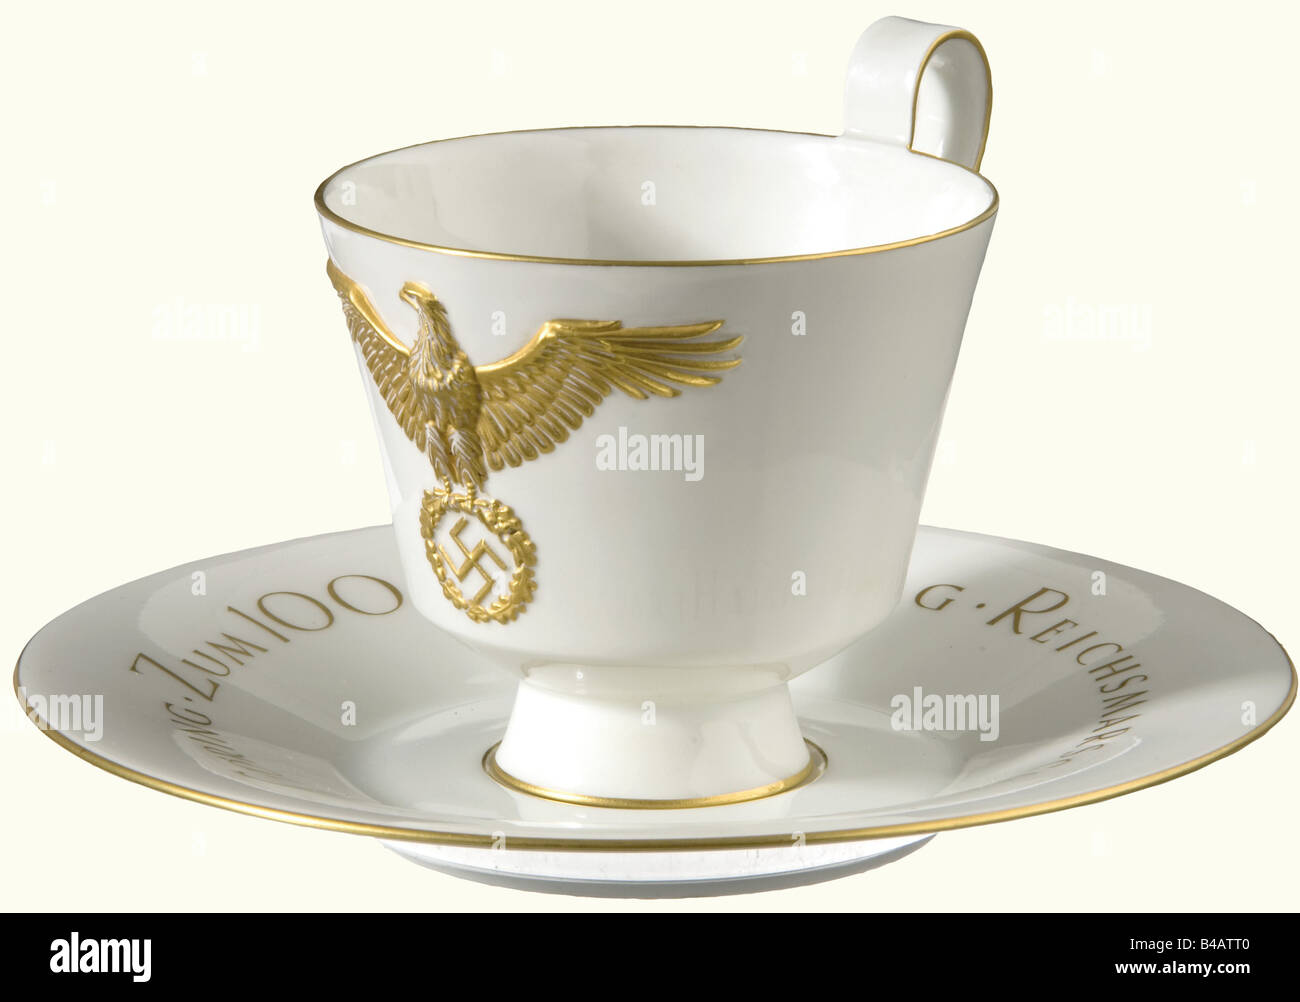 Hermann Göring - a KPM presentation cup celebrating a centenary., White porcelain with gold trim, on one side - Stock Image